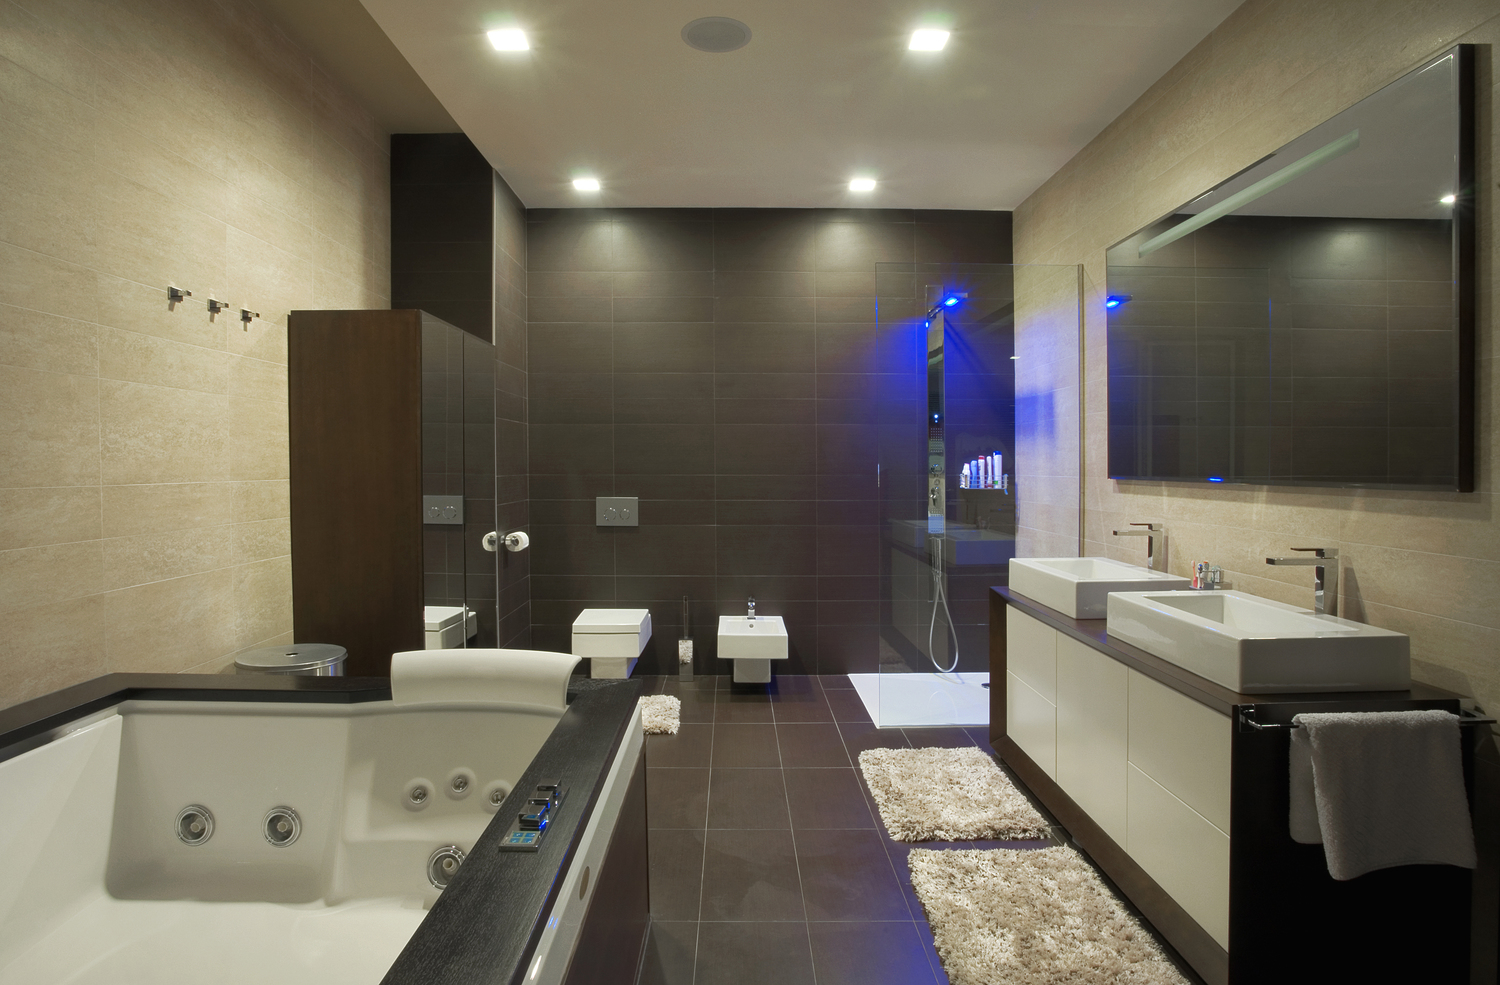 BATHROOM REMODELING - We use excellent quality bathroom fixtures along with other design elements that compliment your vision.